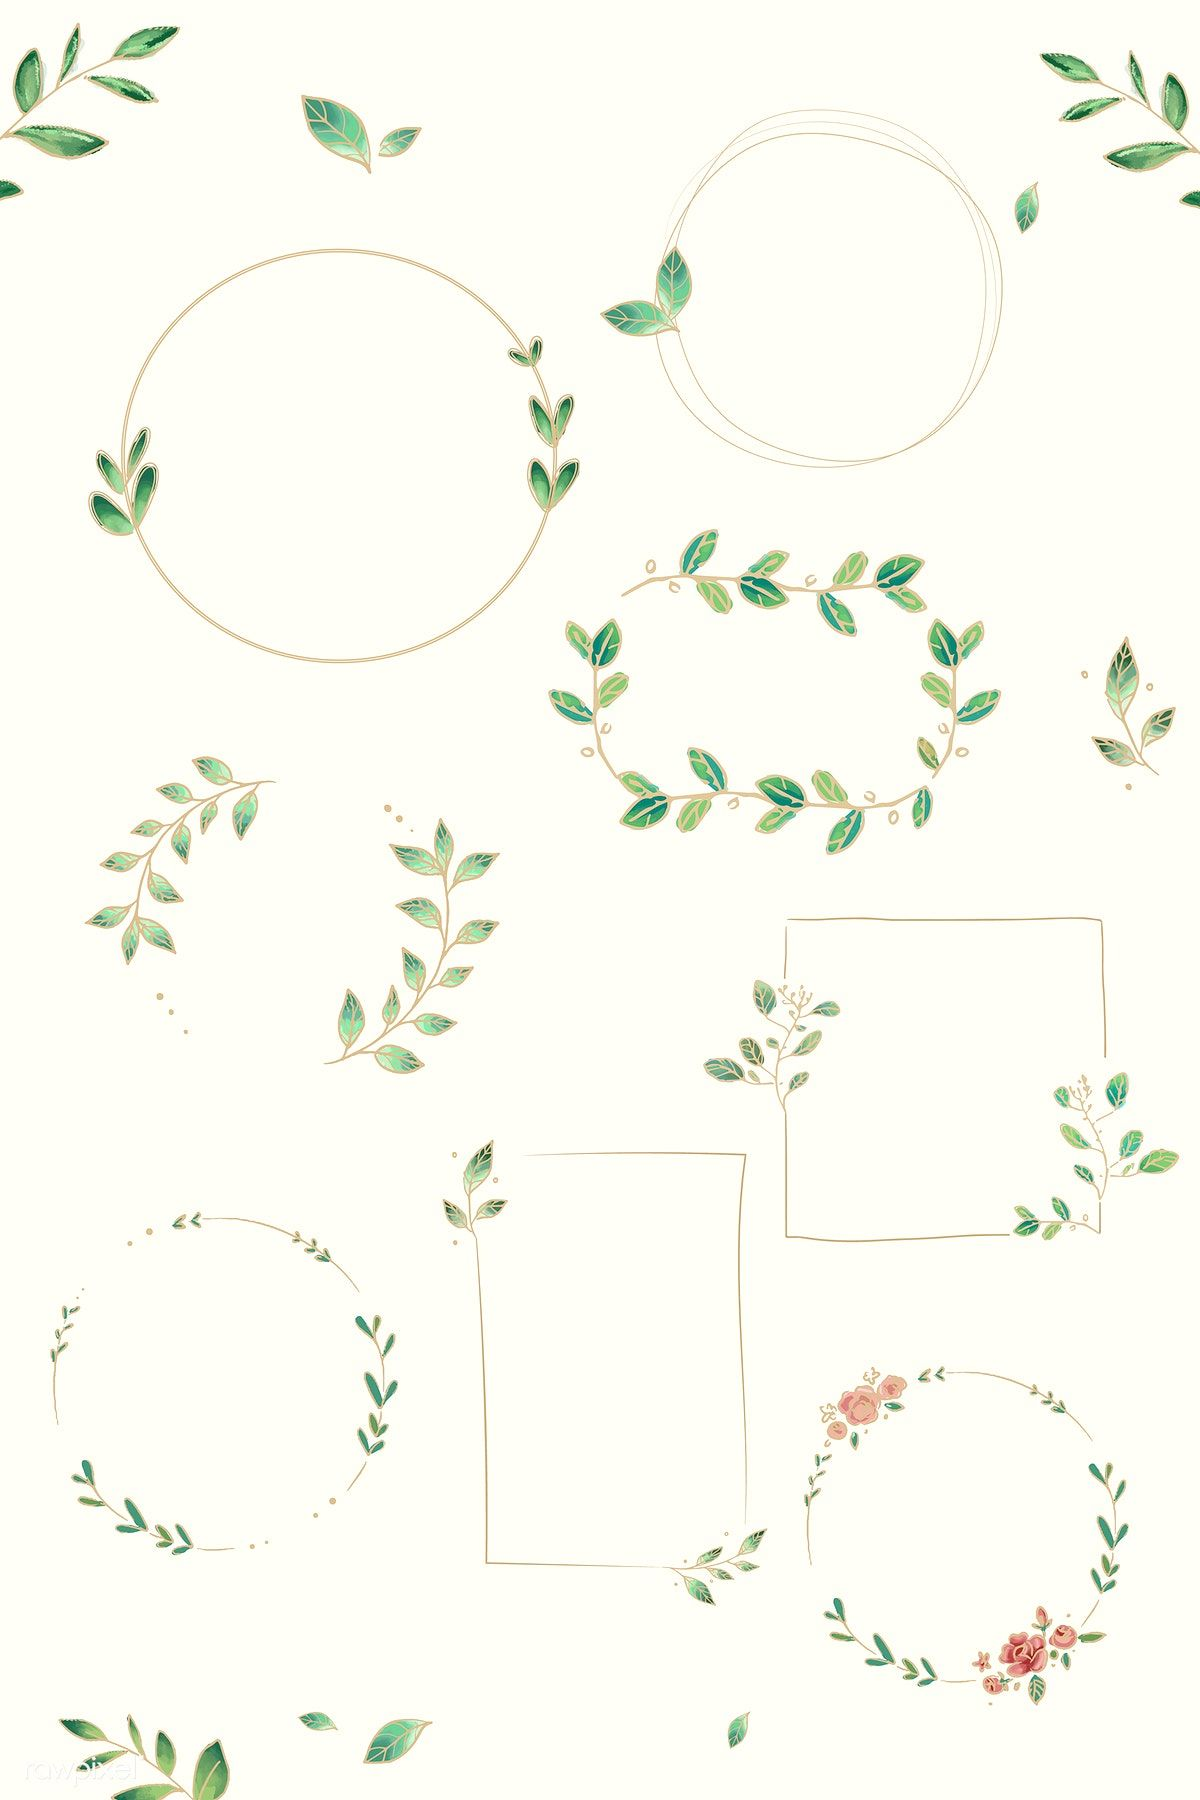 Photo of Download premium vector of doodle floral wreath vector collection 843847